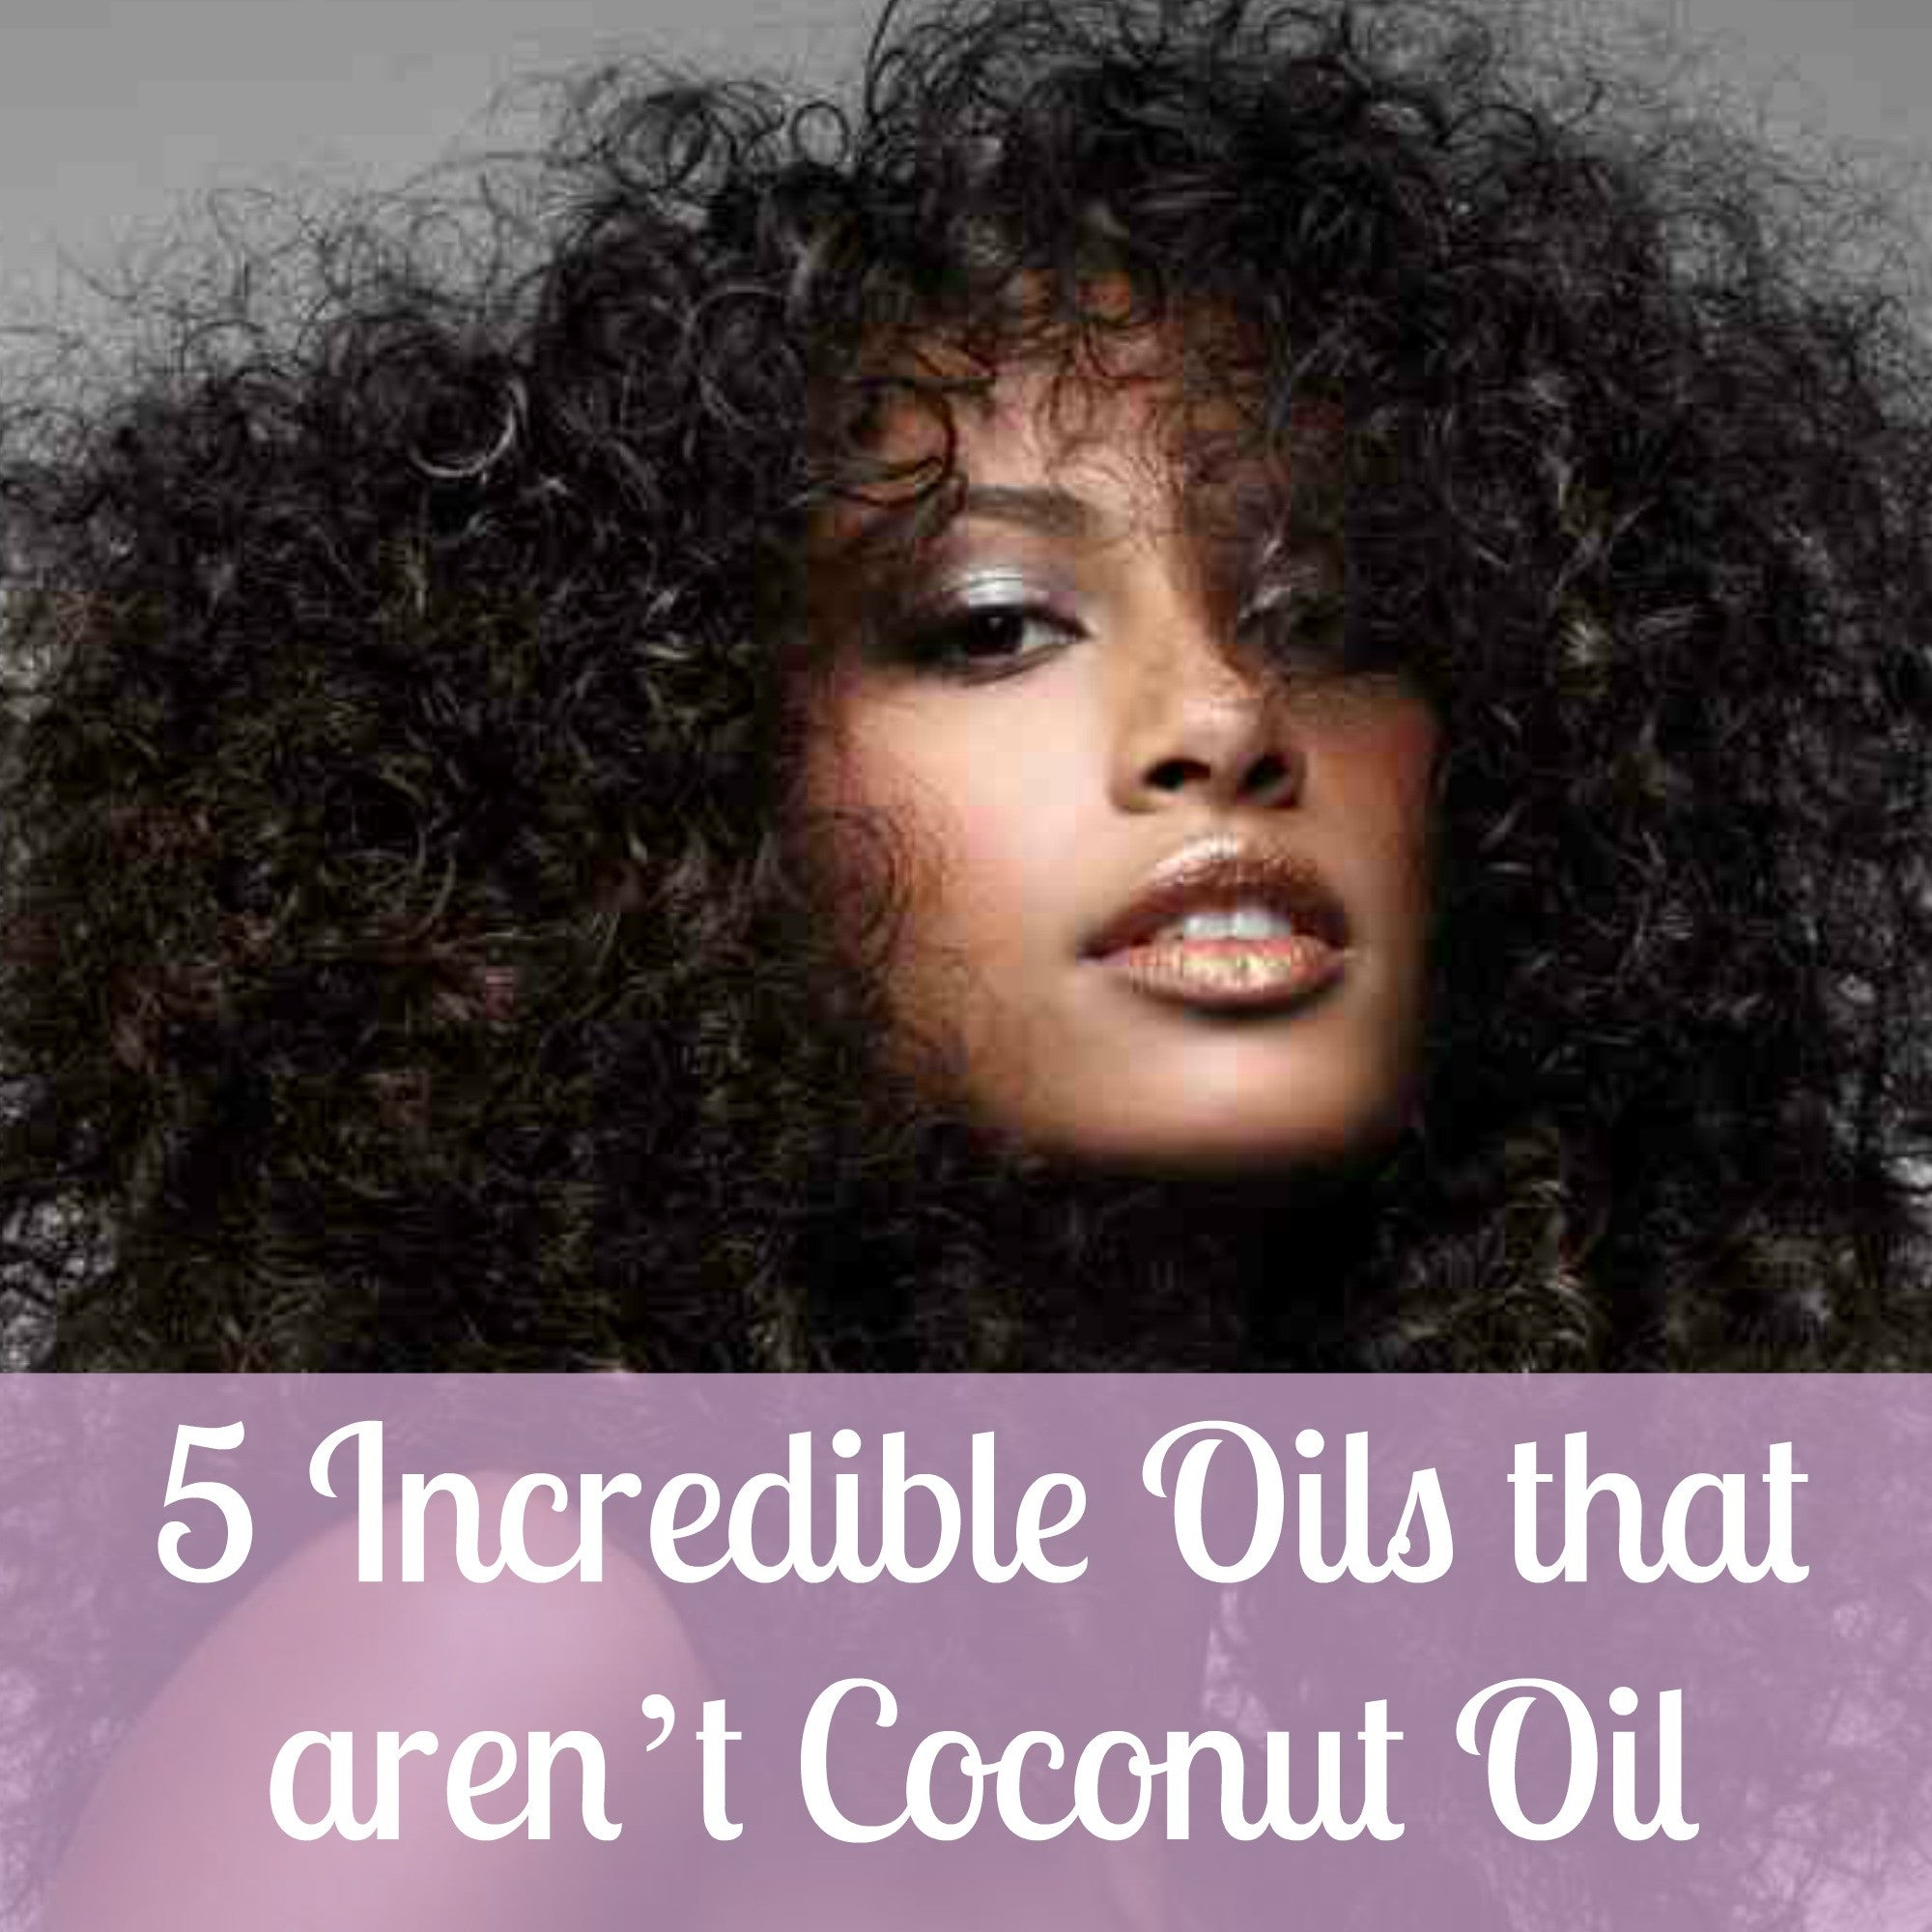 5 INCREDIBLE OILS THAT AREN'T COCONUT OIL